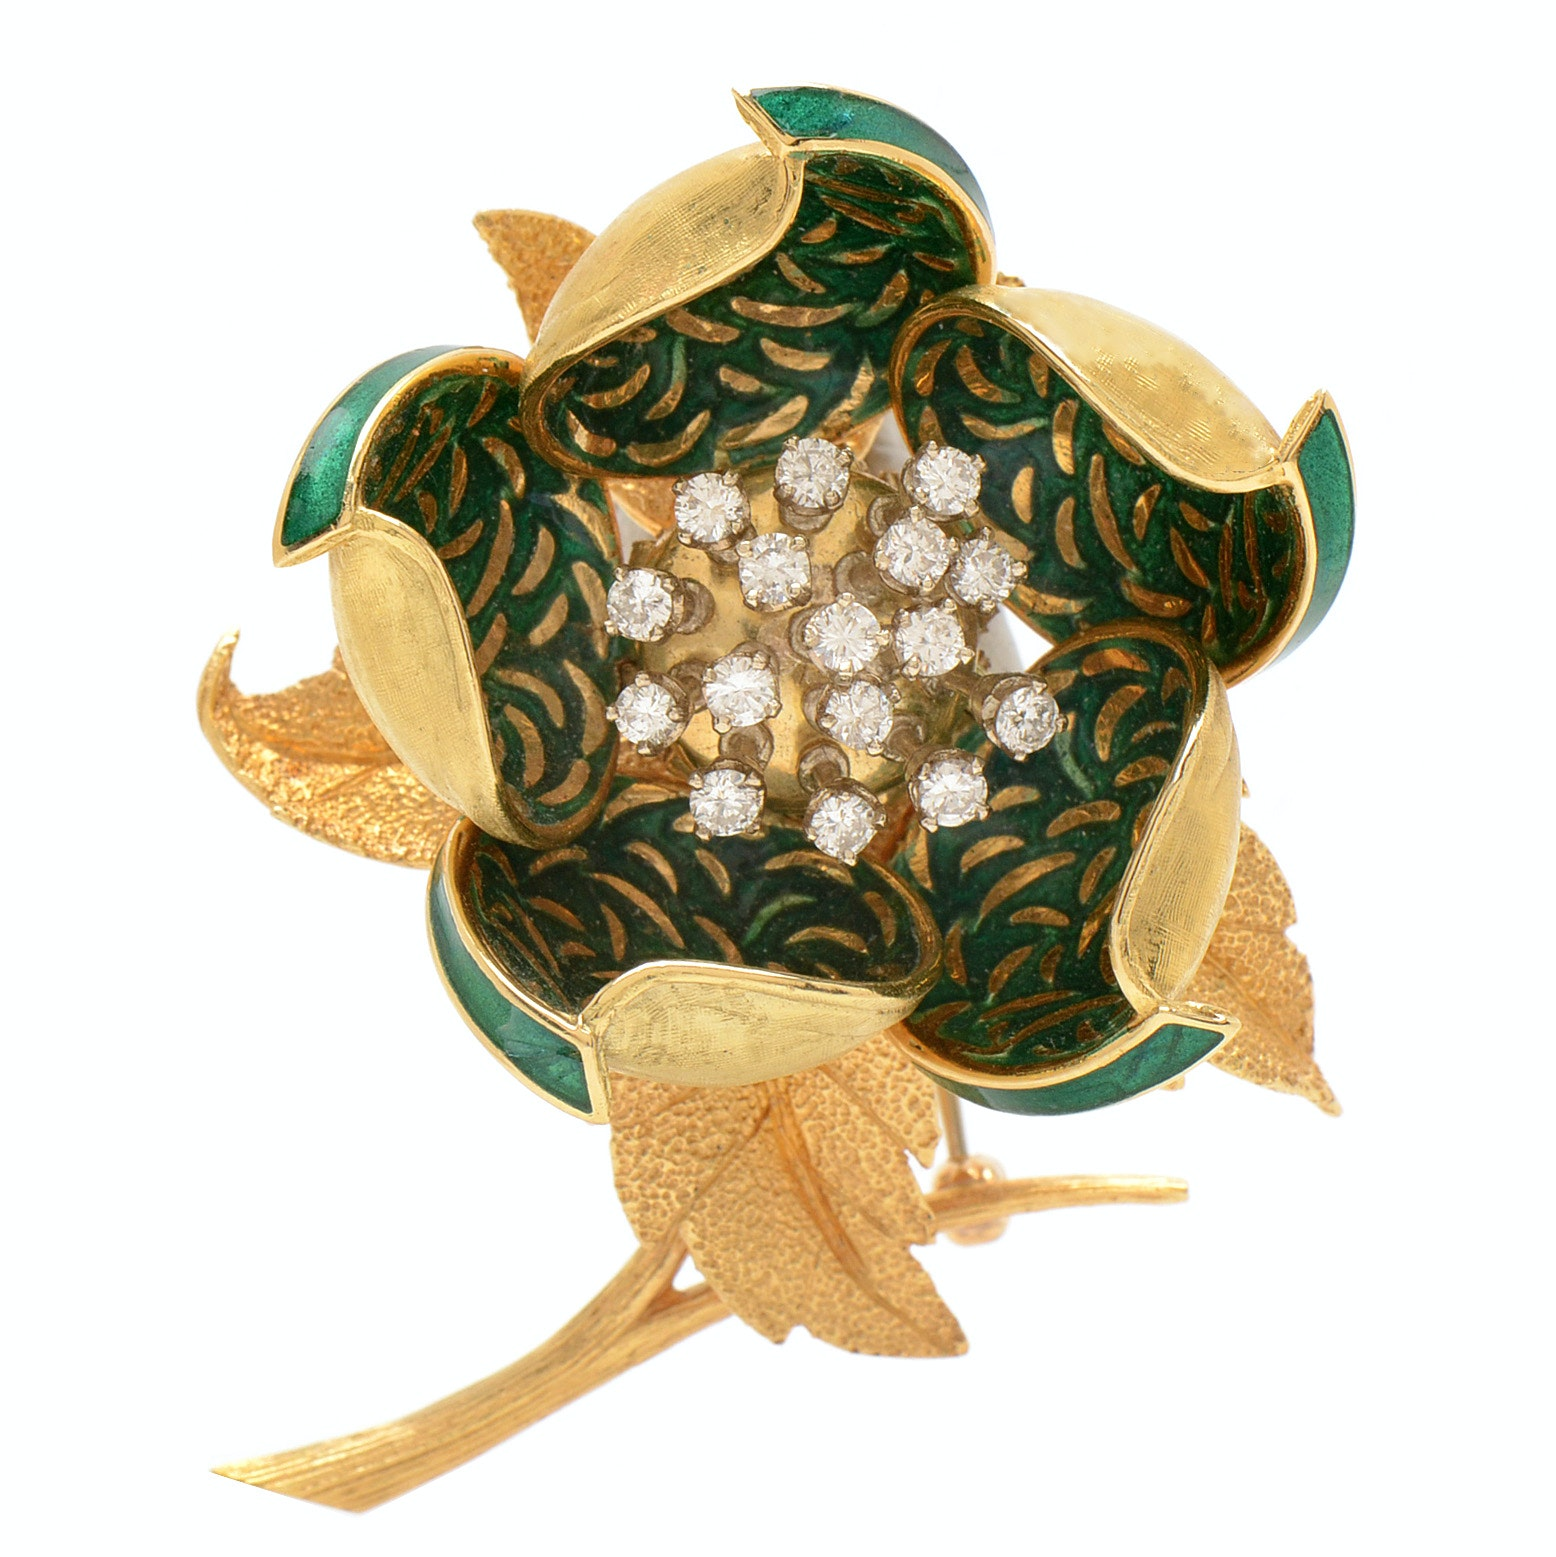 Hammerman Brothers 18K Yellow Gold Diamond and Enamel Articulated Flower Brooch